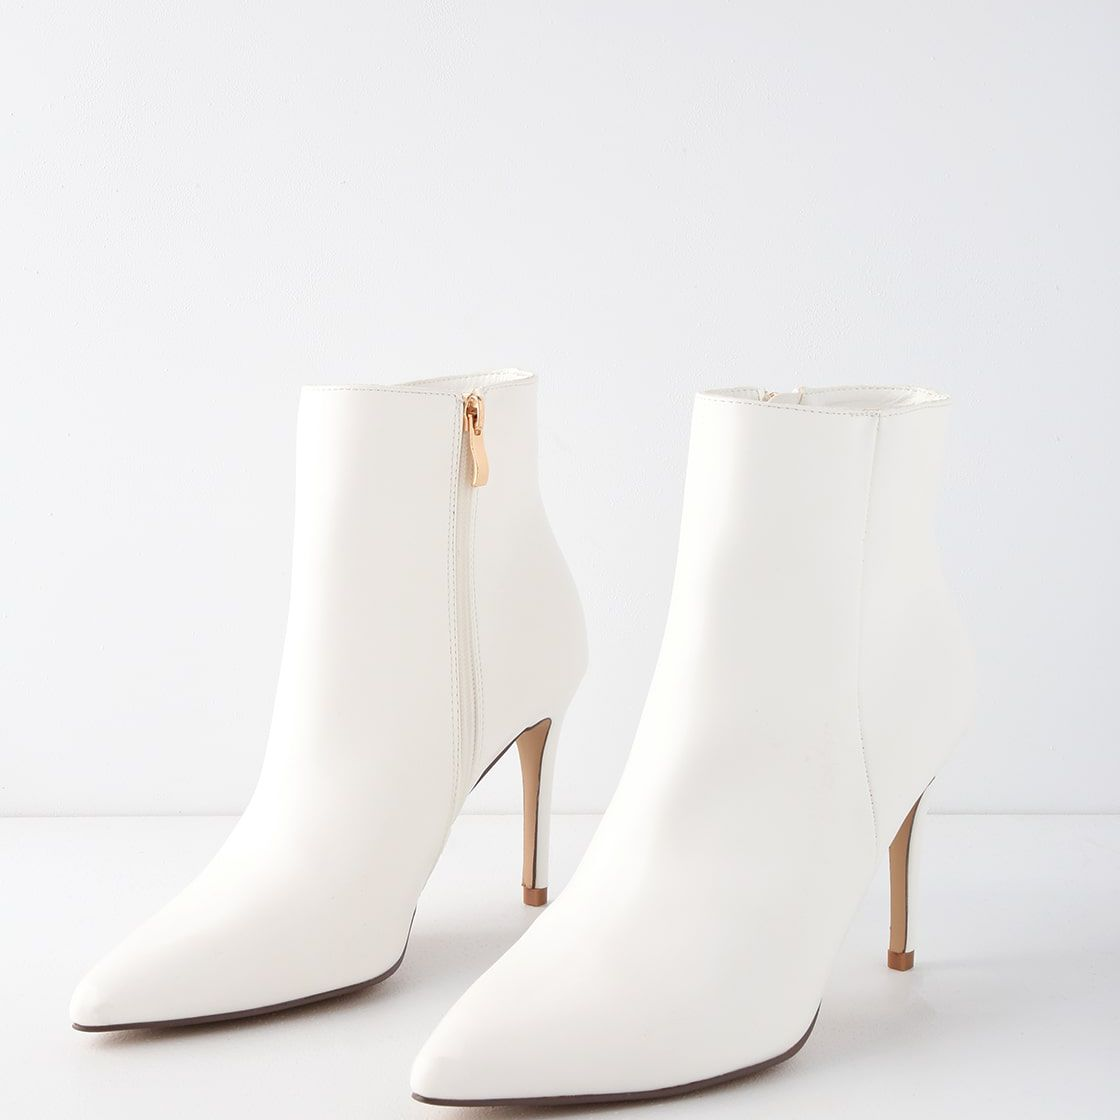 Lulus Selenah White Pointed Toe Ankle Booties